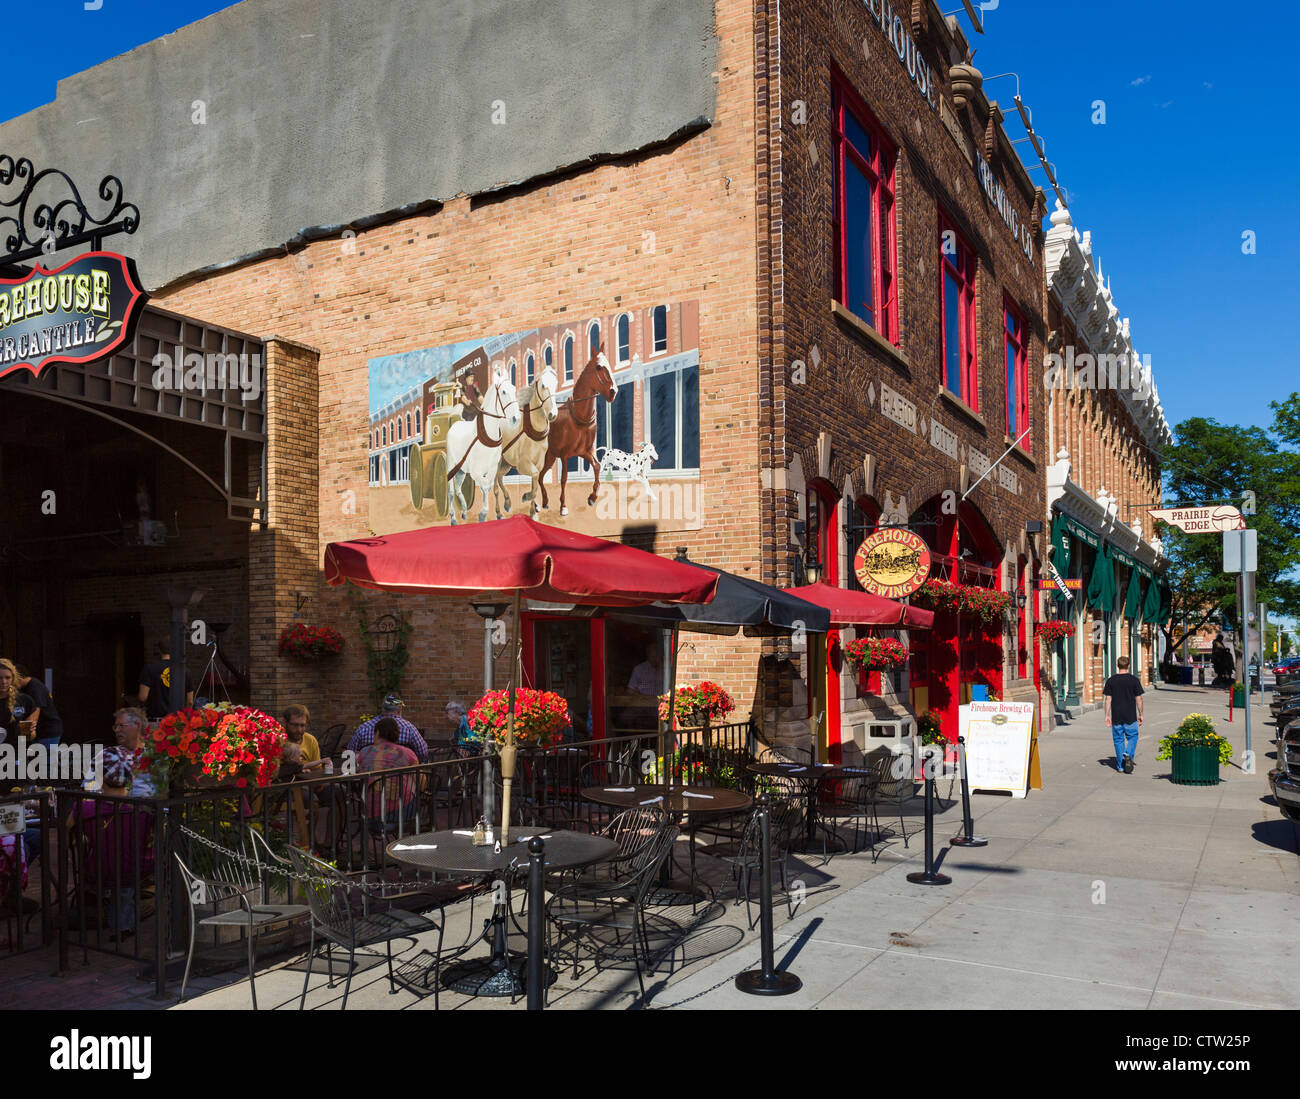 The Firehouse Brewing Co bar and brewery on Main Street in downtown Rapid City, South Dakota, USA - Stock Image